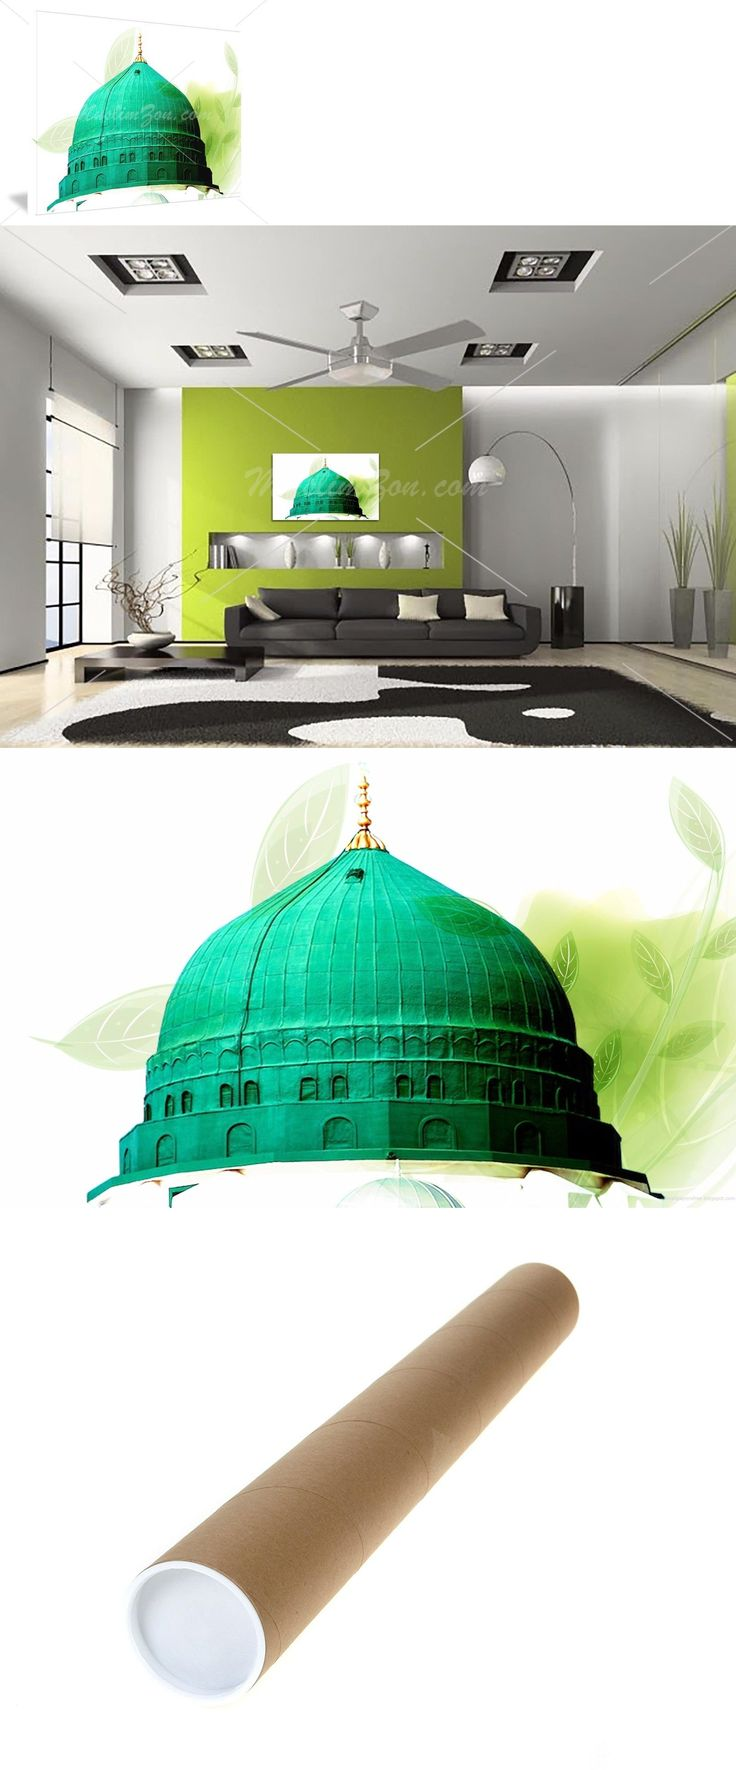 Stretched Canvas and Boards 125229: Al-Masjid An-Nabawi Dome #1 Islamic Gallery Canvas Ramadan Eid Home Decor Gift -> BUY IT NOW ONLY: $39.95 on eBay!